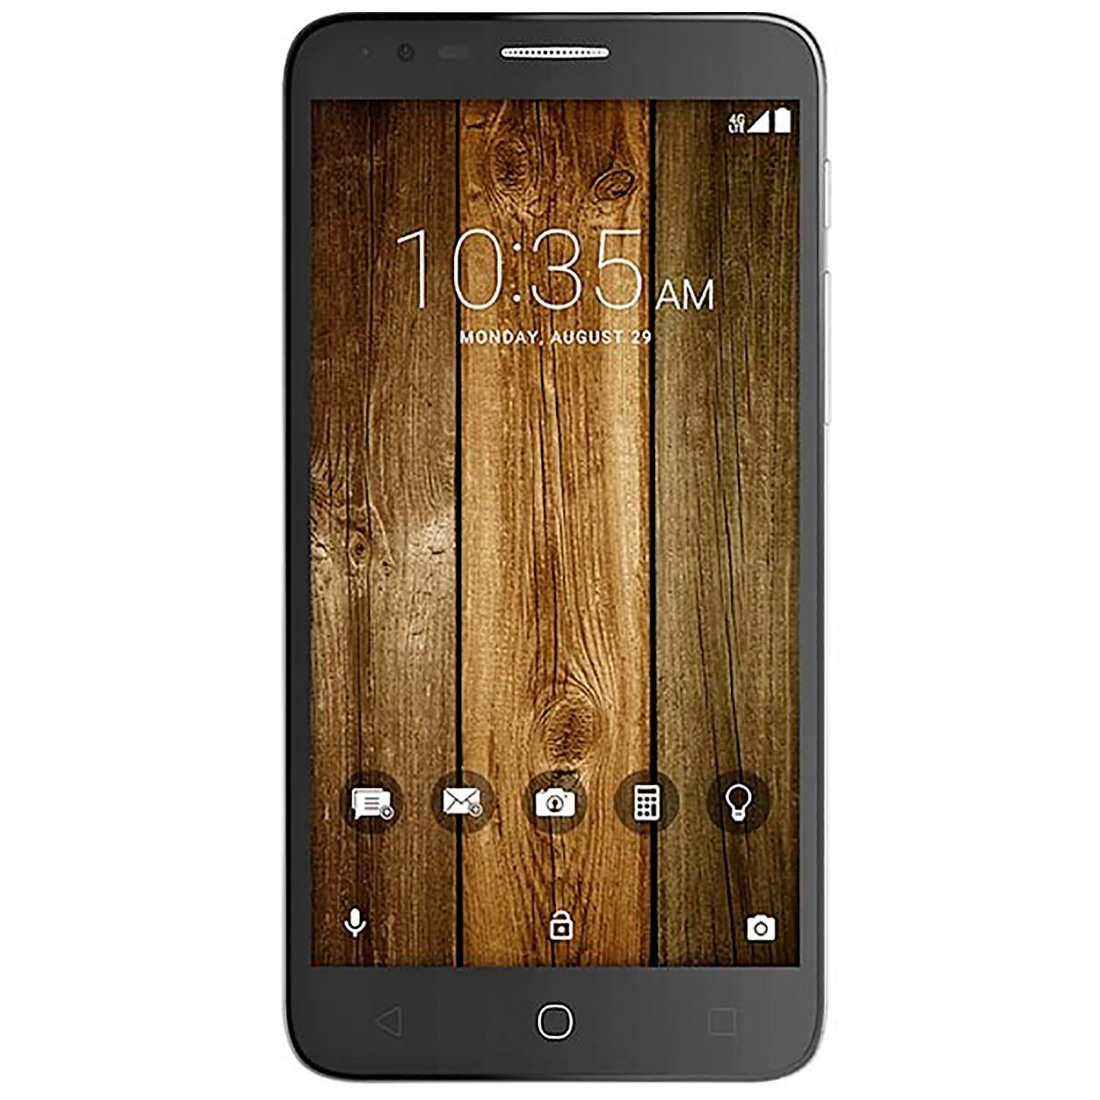 Smartphone Alcatel Fierce 4 16 GB Negro